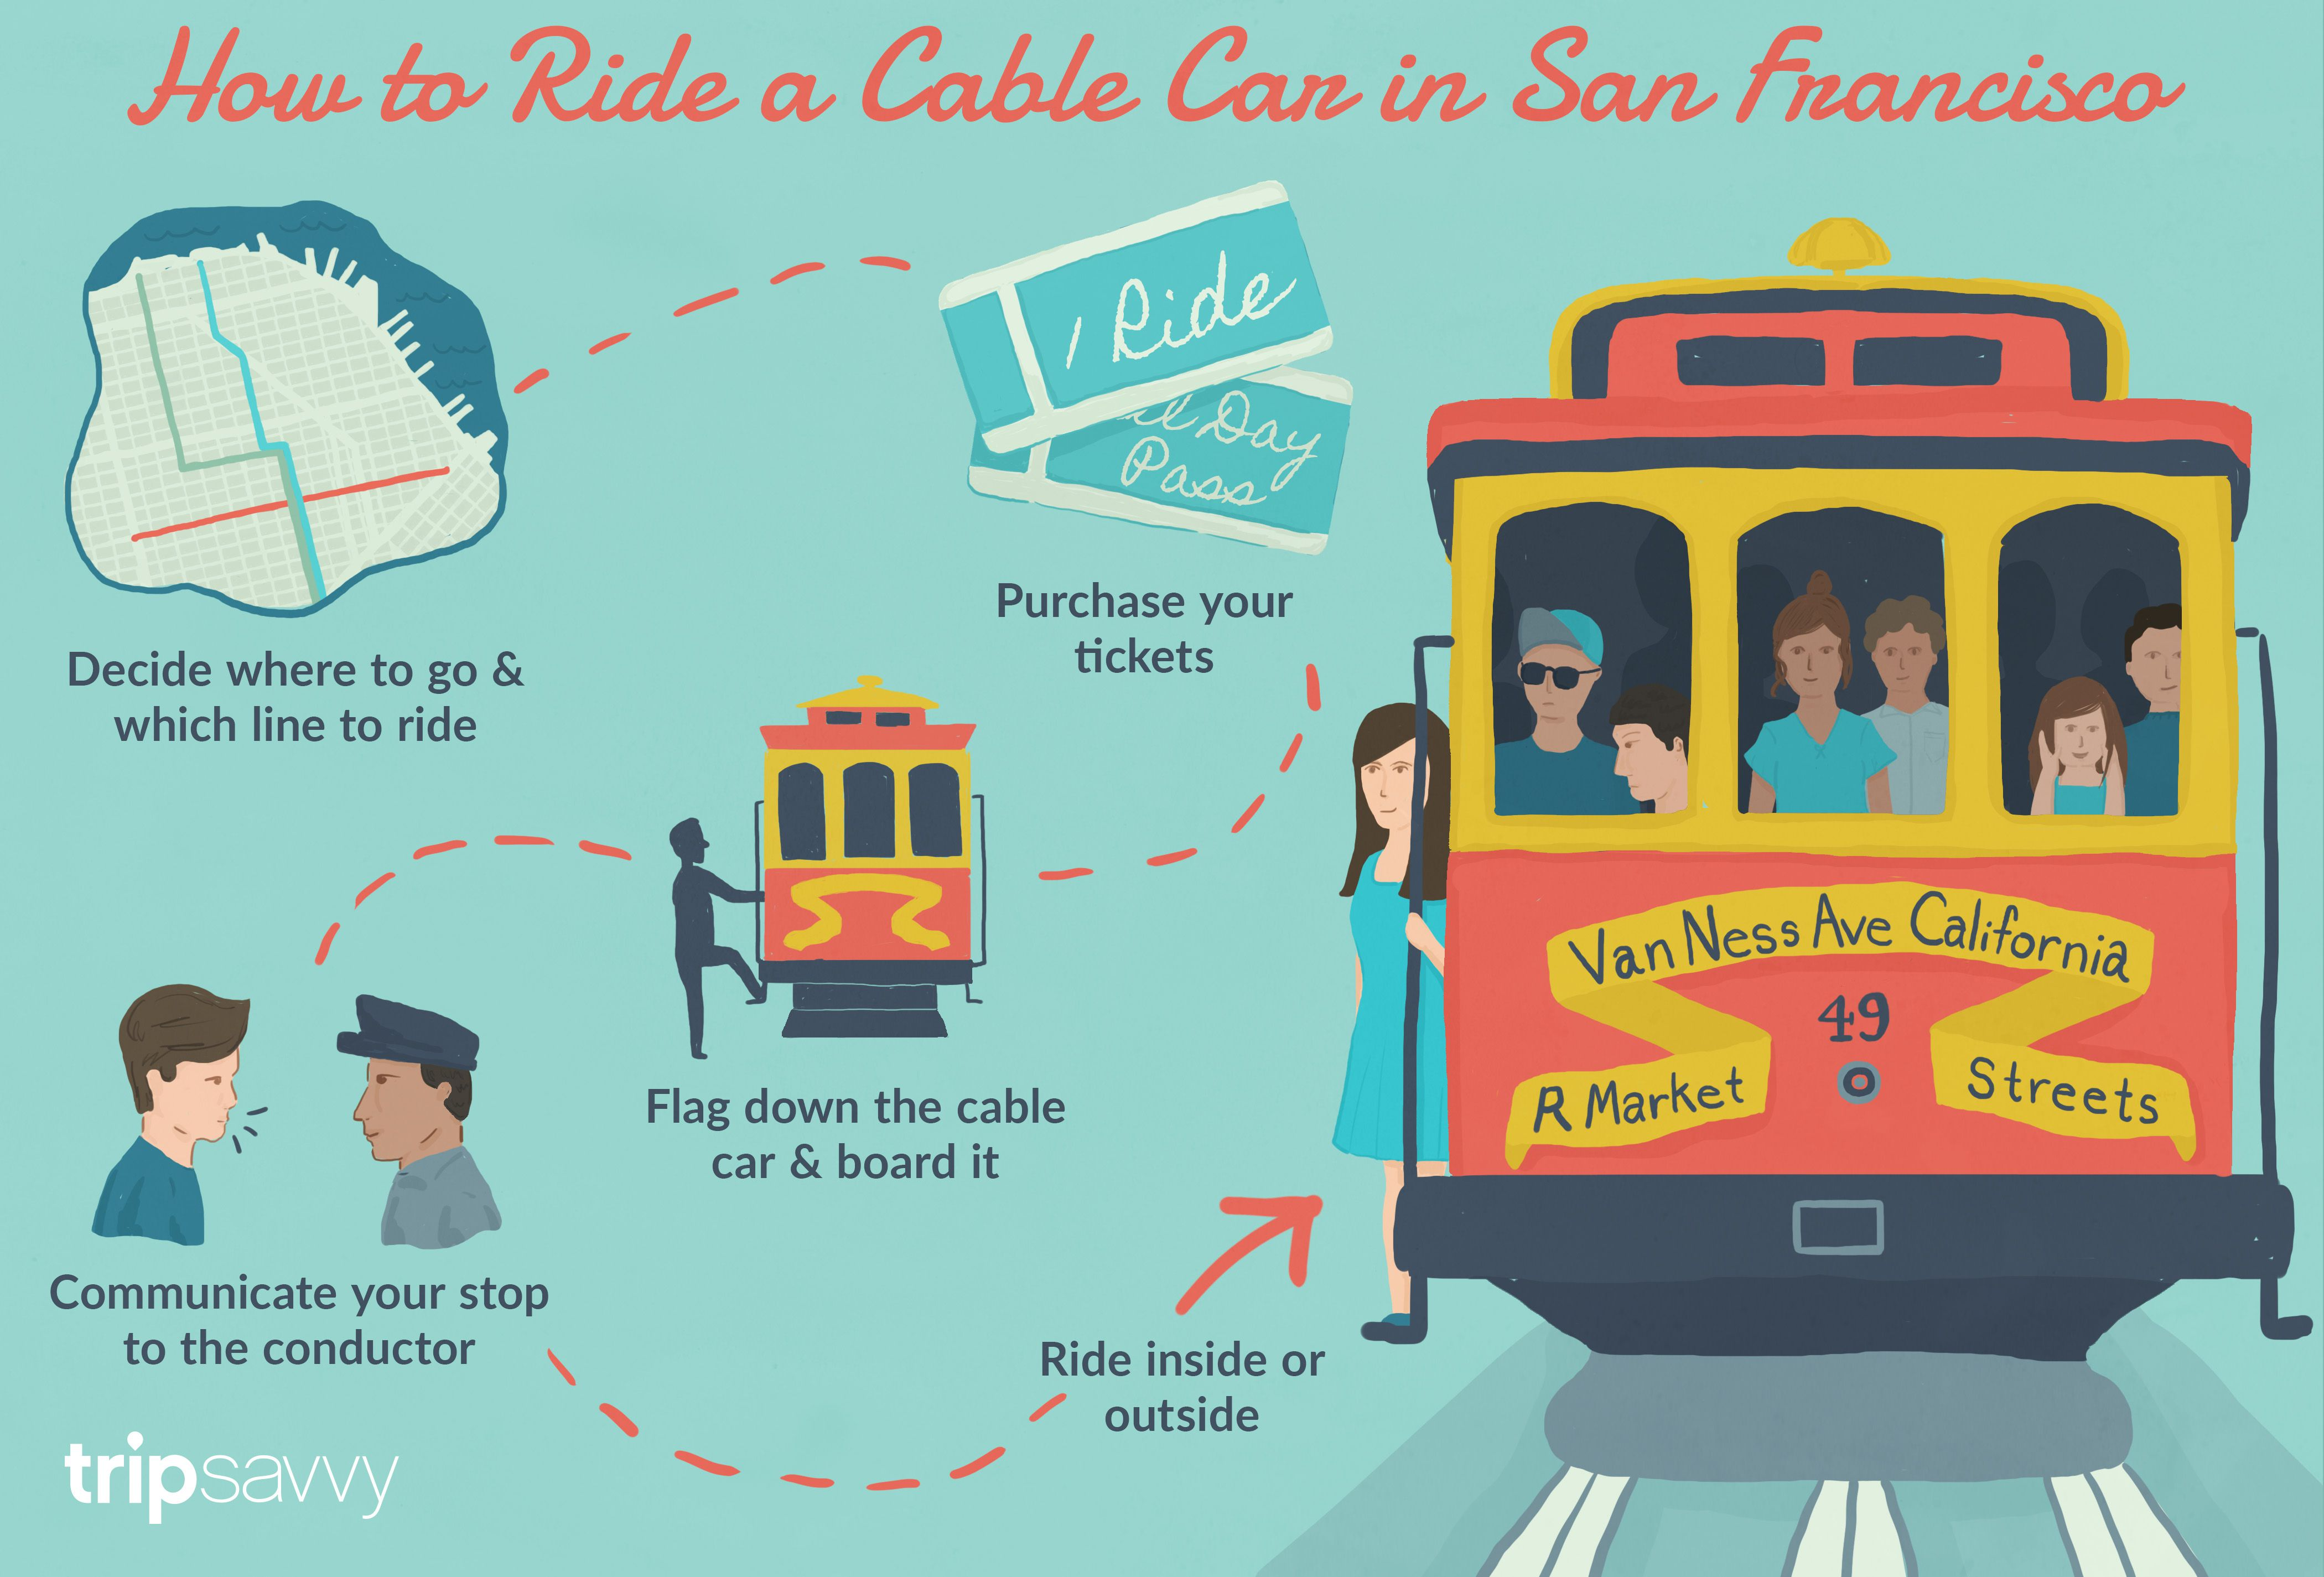 Ride a San Francisco Cable Car: What You Need to Know San Francisco Cable Car System Route Map on union square san francisco map, san francisco bart map, san francisco airport transportation, san francisco sfo airport terminal map, san francisco bay united states map, san francisco map usa, lombard street san francisco map, san francisco cali on map, streets of san francisco map, market street san francisco map, san francisco city sightseeing map, san francisco caltrain station map, san francisco trolley route, san francisco f. line map, cable car stop map, san francisco bike share, san francisco trolley map, golden gate bridge route map, san francisco bus route planner,